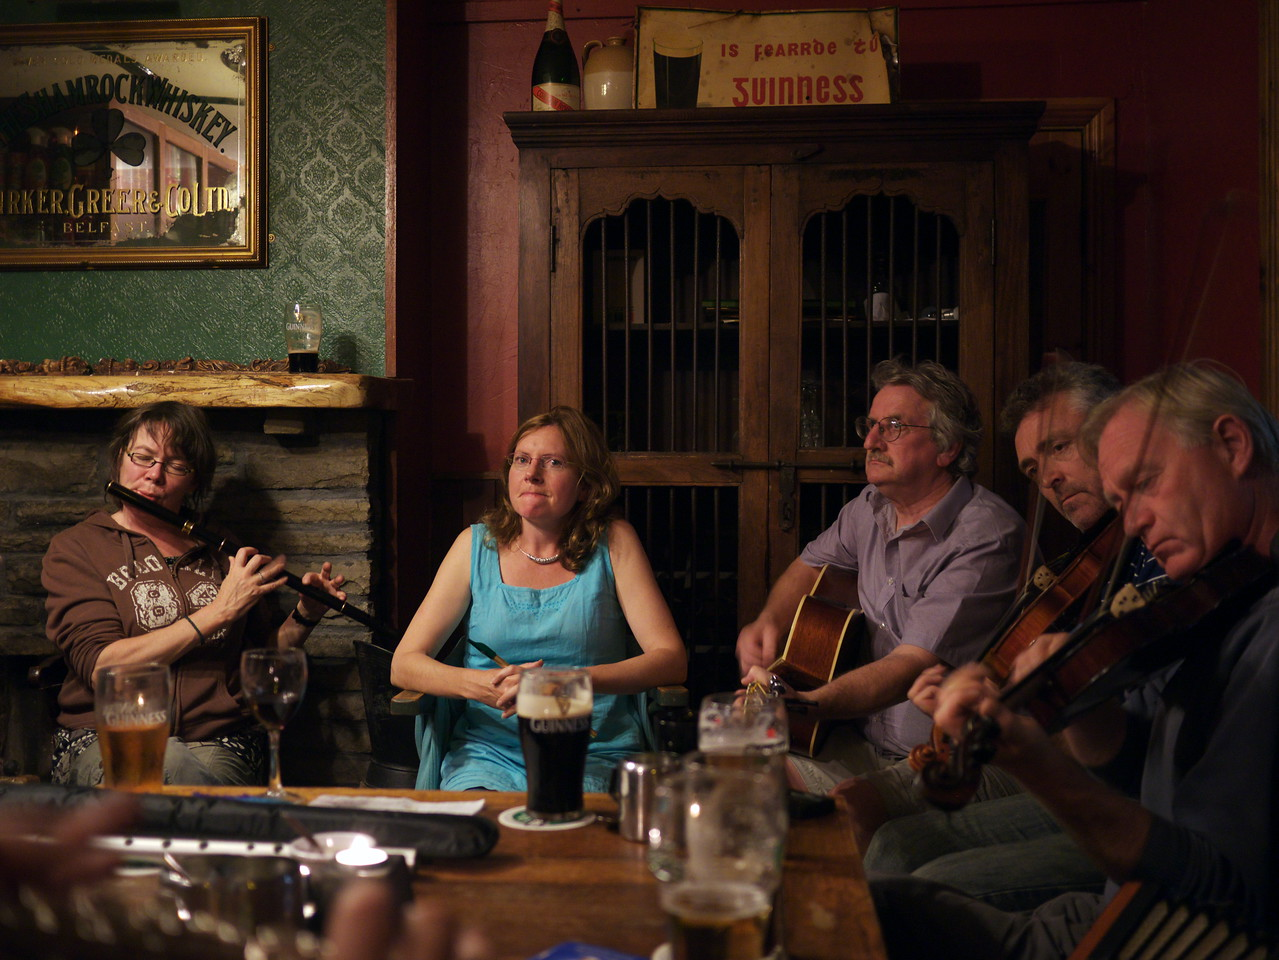 """August 5 2011 'Traditional Music in an Irish Bar' Today is my birthday so last night a friend of mine took be to Ballyferritor a small village 12 miles from Dingle to listen to some Irish music.  It was amazing there was at one time some 12 musicians playing.  This photo does not do justice to the wonderful music that was played last night but at least you will get a small idea what the music was like.<br /> A Youtube video of the music is here...<br /> <a href=""""http://youtu.be/z2f5Ty50xik?hd=1"""">http://youtu.be/z2f5Ty50xik?hd=1</a>"""